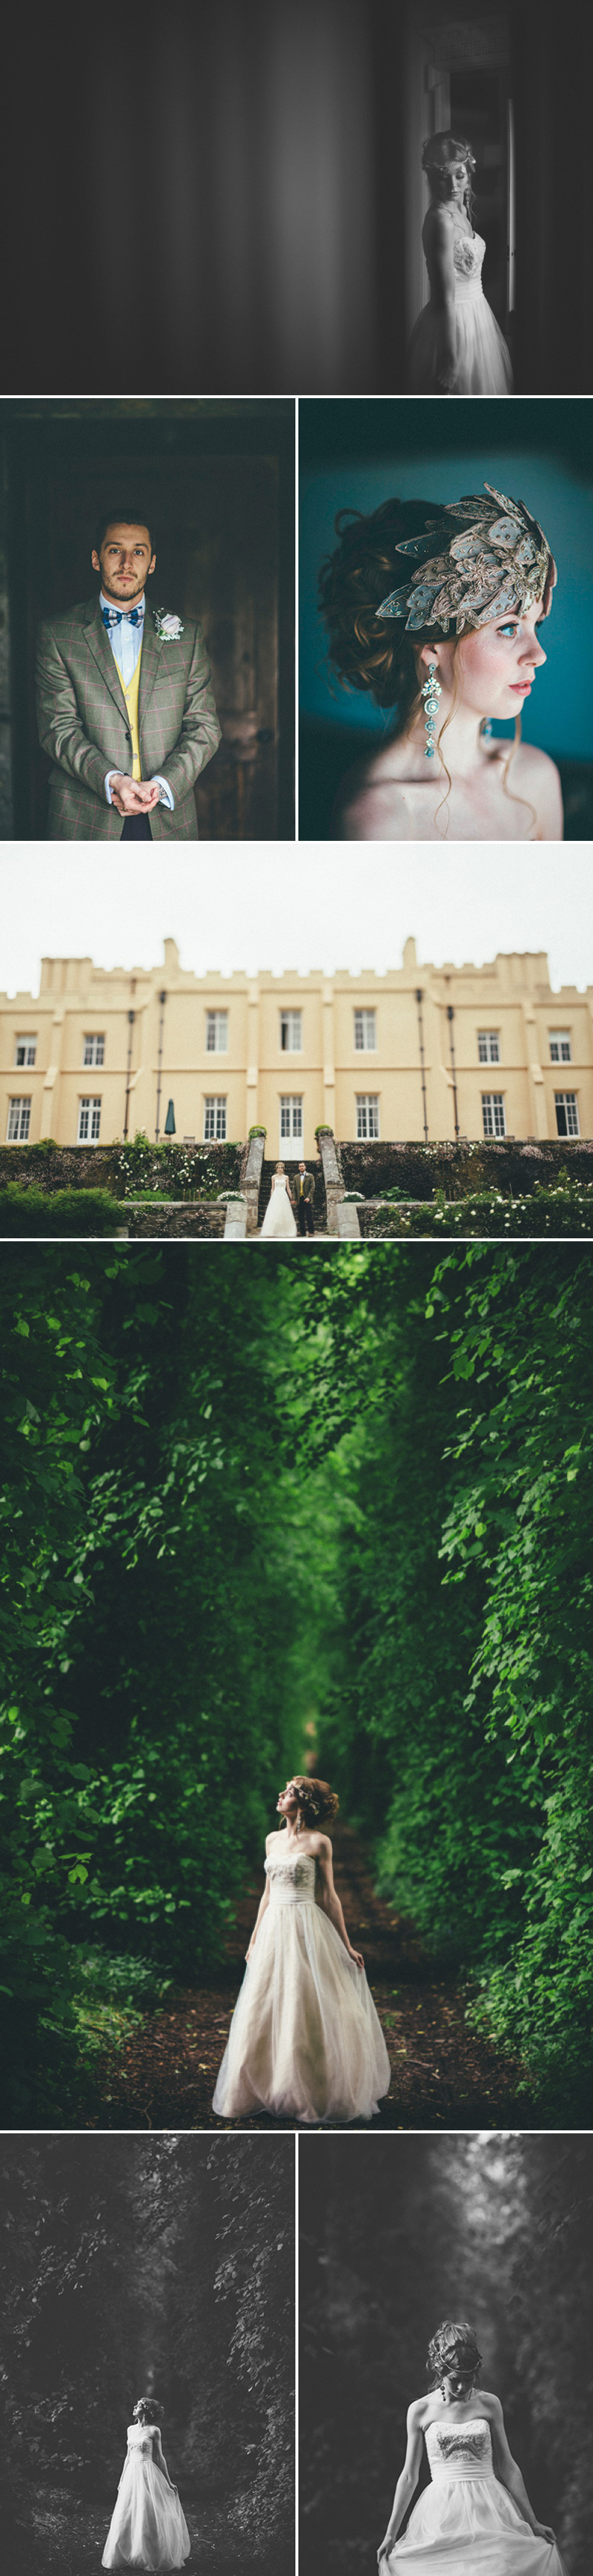 rustic-elegance-bridal-styled-shoot-at-pentillie-castle-styled-by-blue-fizz-ben-selway-photography-coco-wedding-venues-layer3a